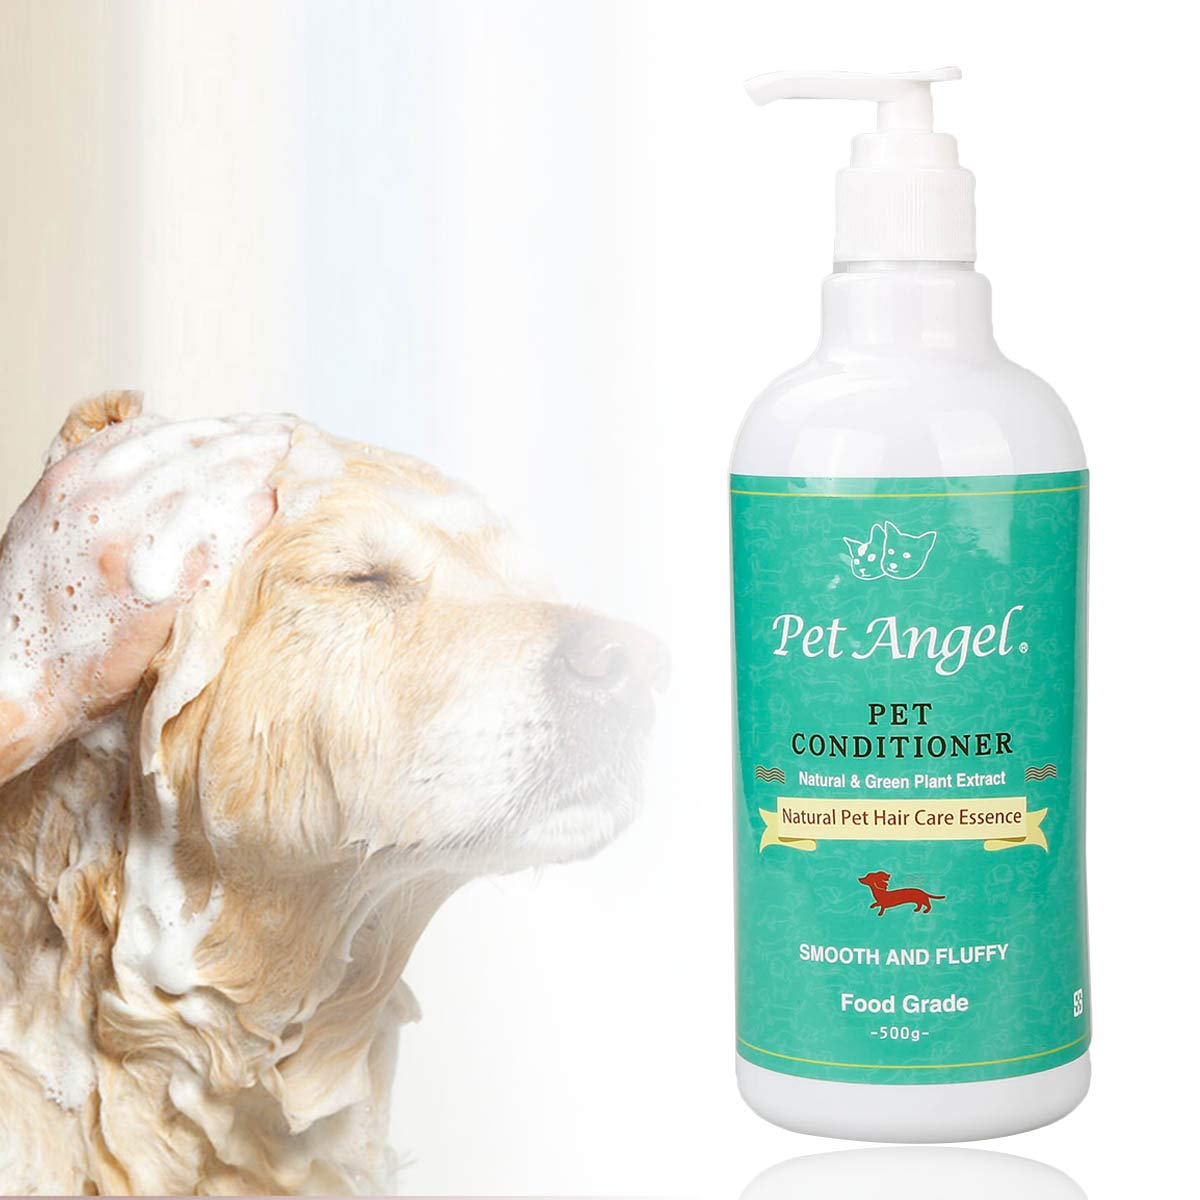 HeCloud Pet Shampoo and Pet Conditioner Kit -100% Natural Plant Formula, Suitable for Dogs and Cats